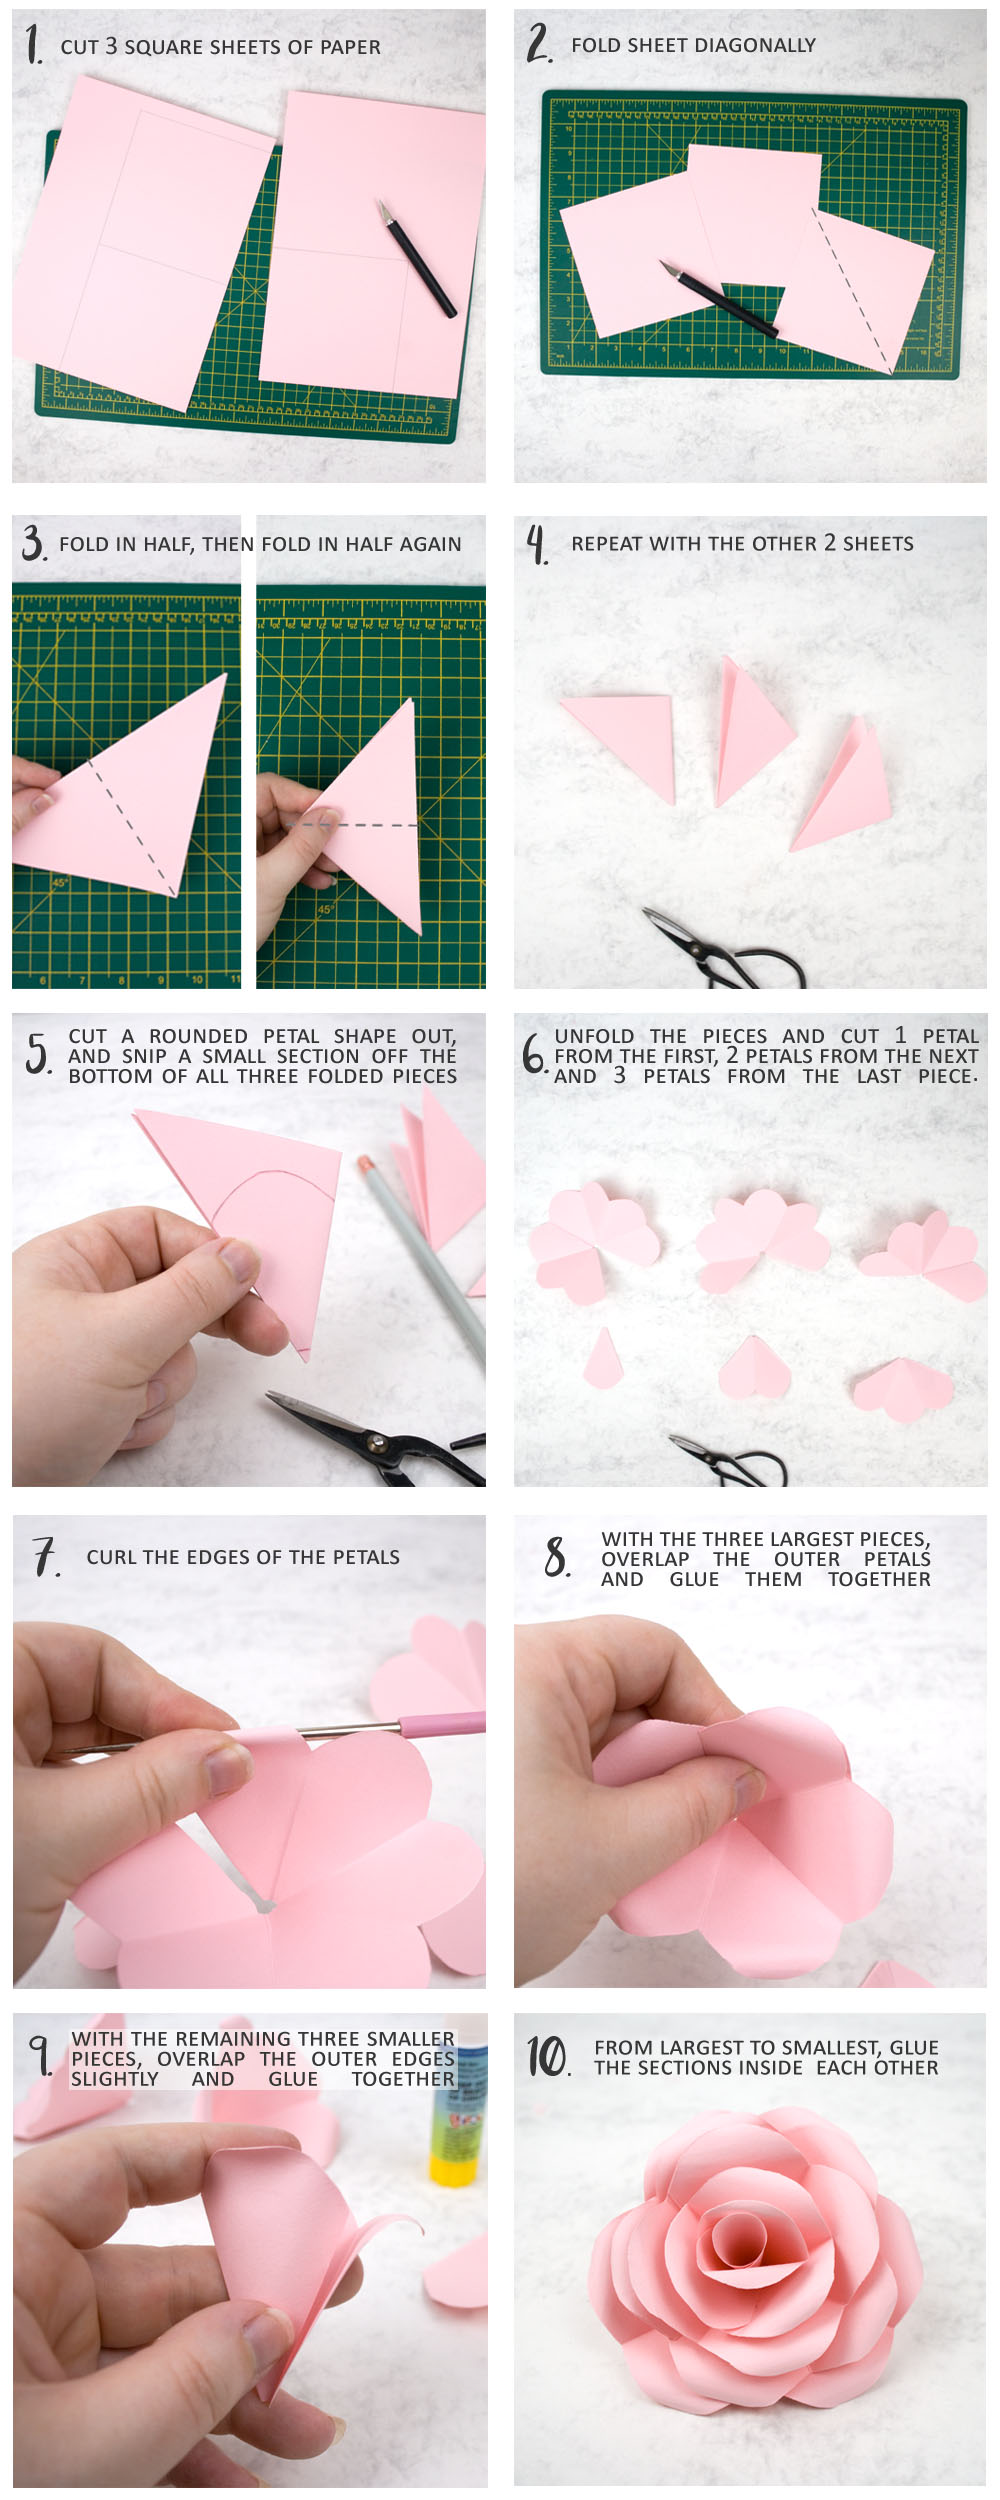 How to Fold a Lifelike Origami Rose for Valentine's Day « Origami ... | 2500x1000